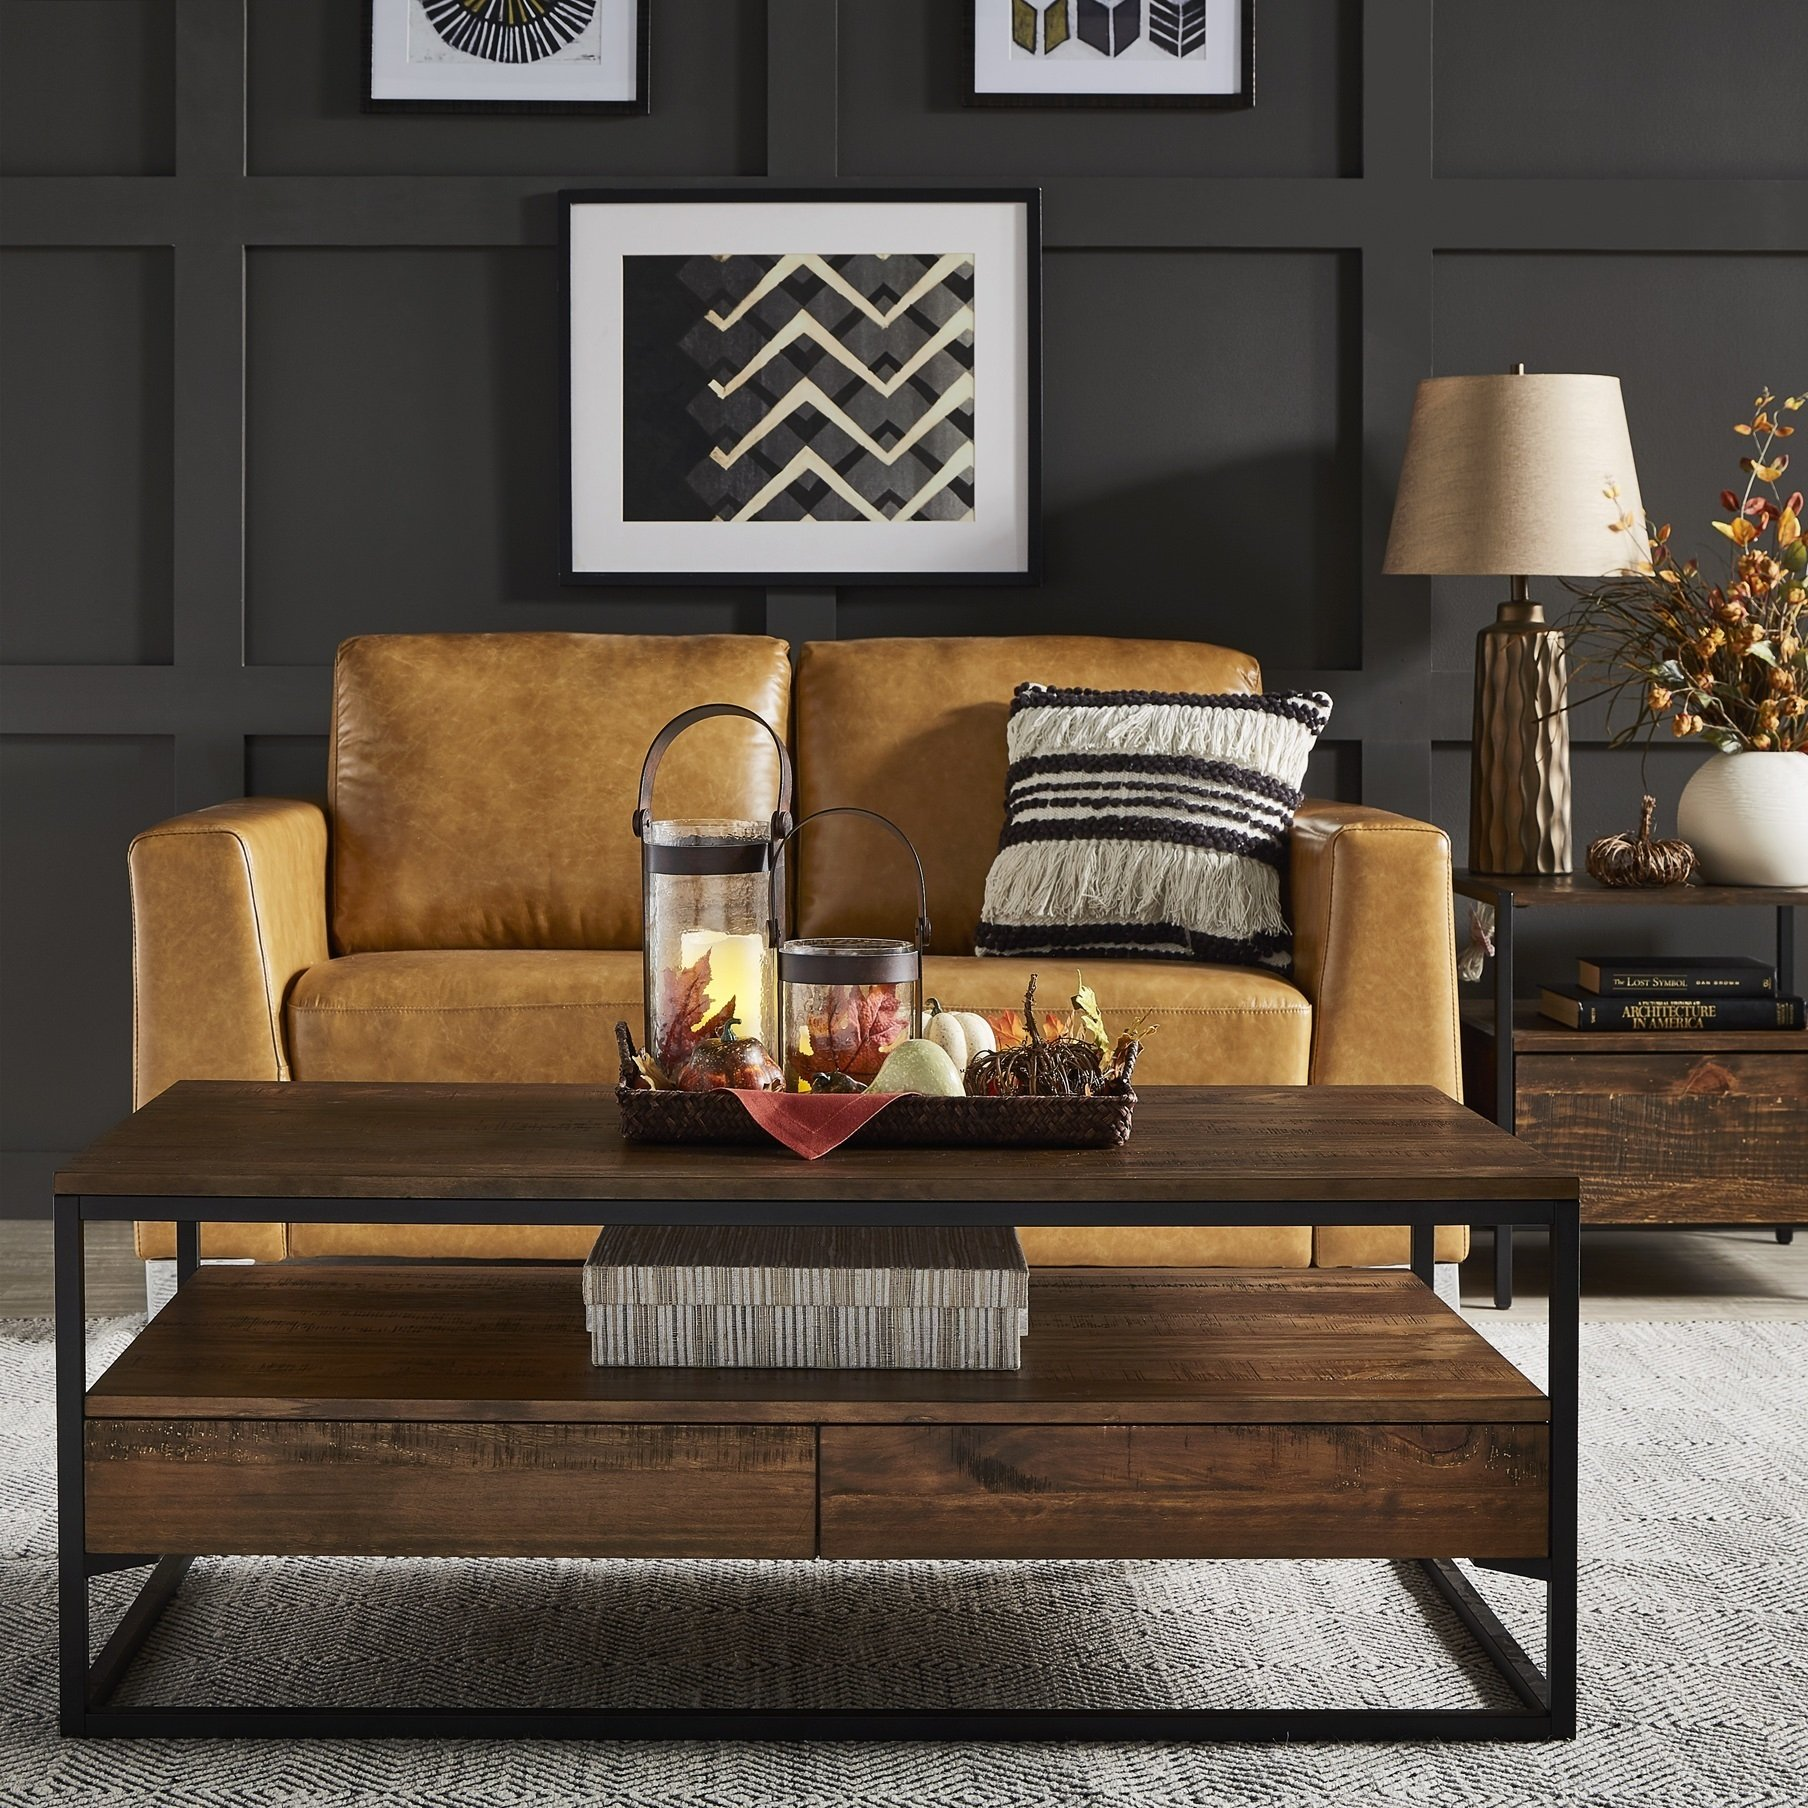 corey rustic brown accent tables inspire modern table behind couch inch nightstand pier locations nautical mini pendant lights gray round end with drawers target kindle fire